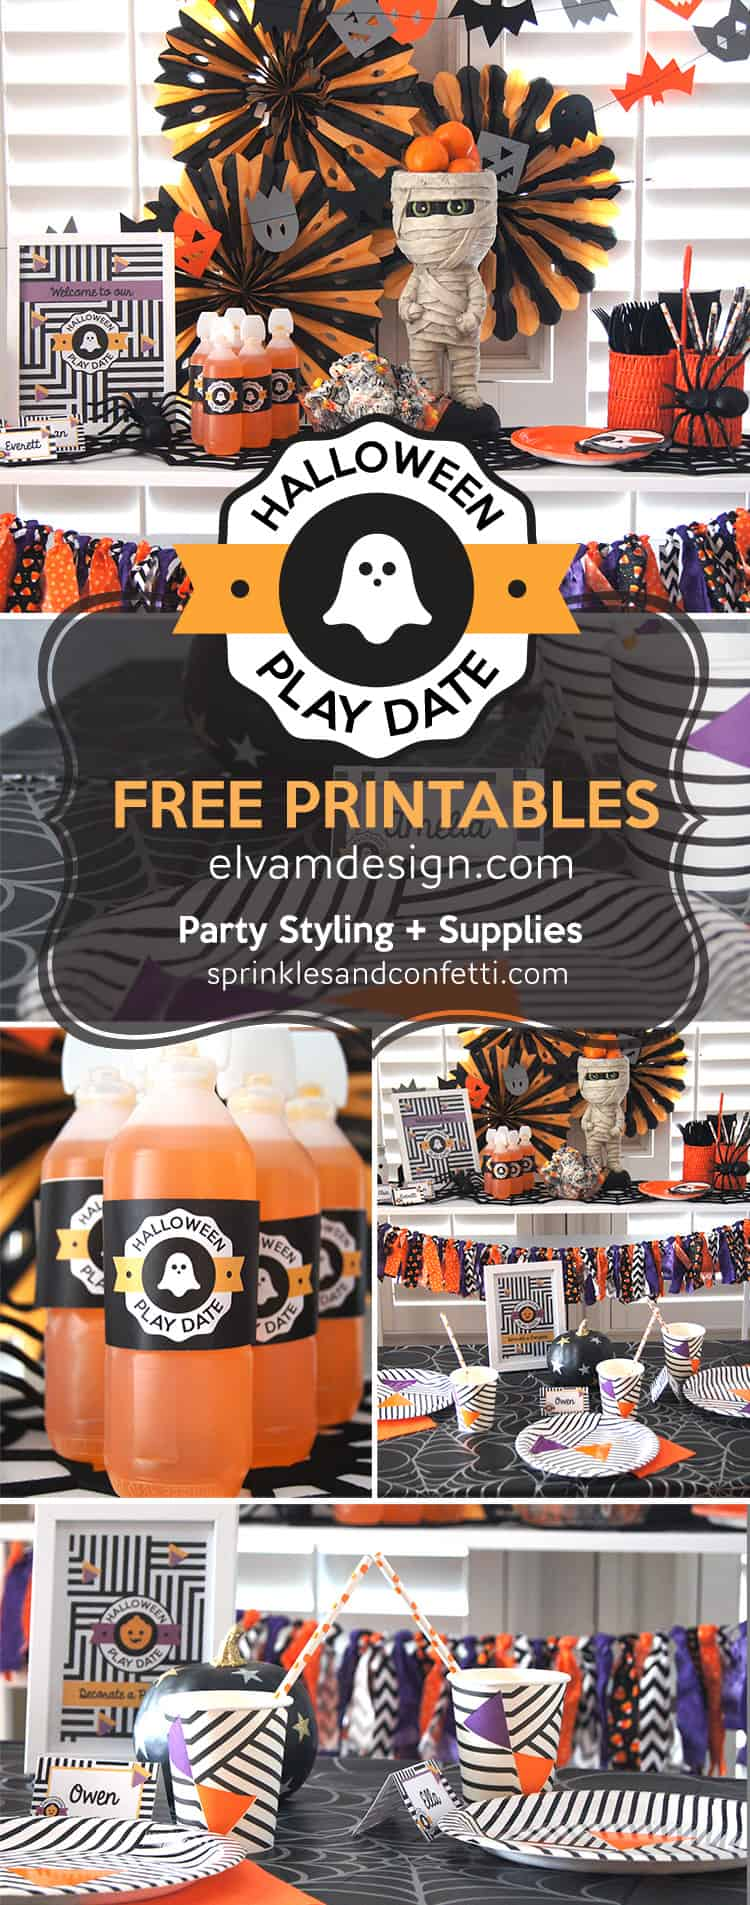 Host a Halloween Play Date with free printables from Elva M Design Studio